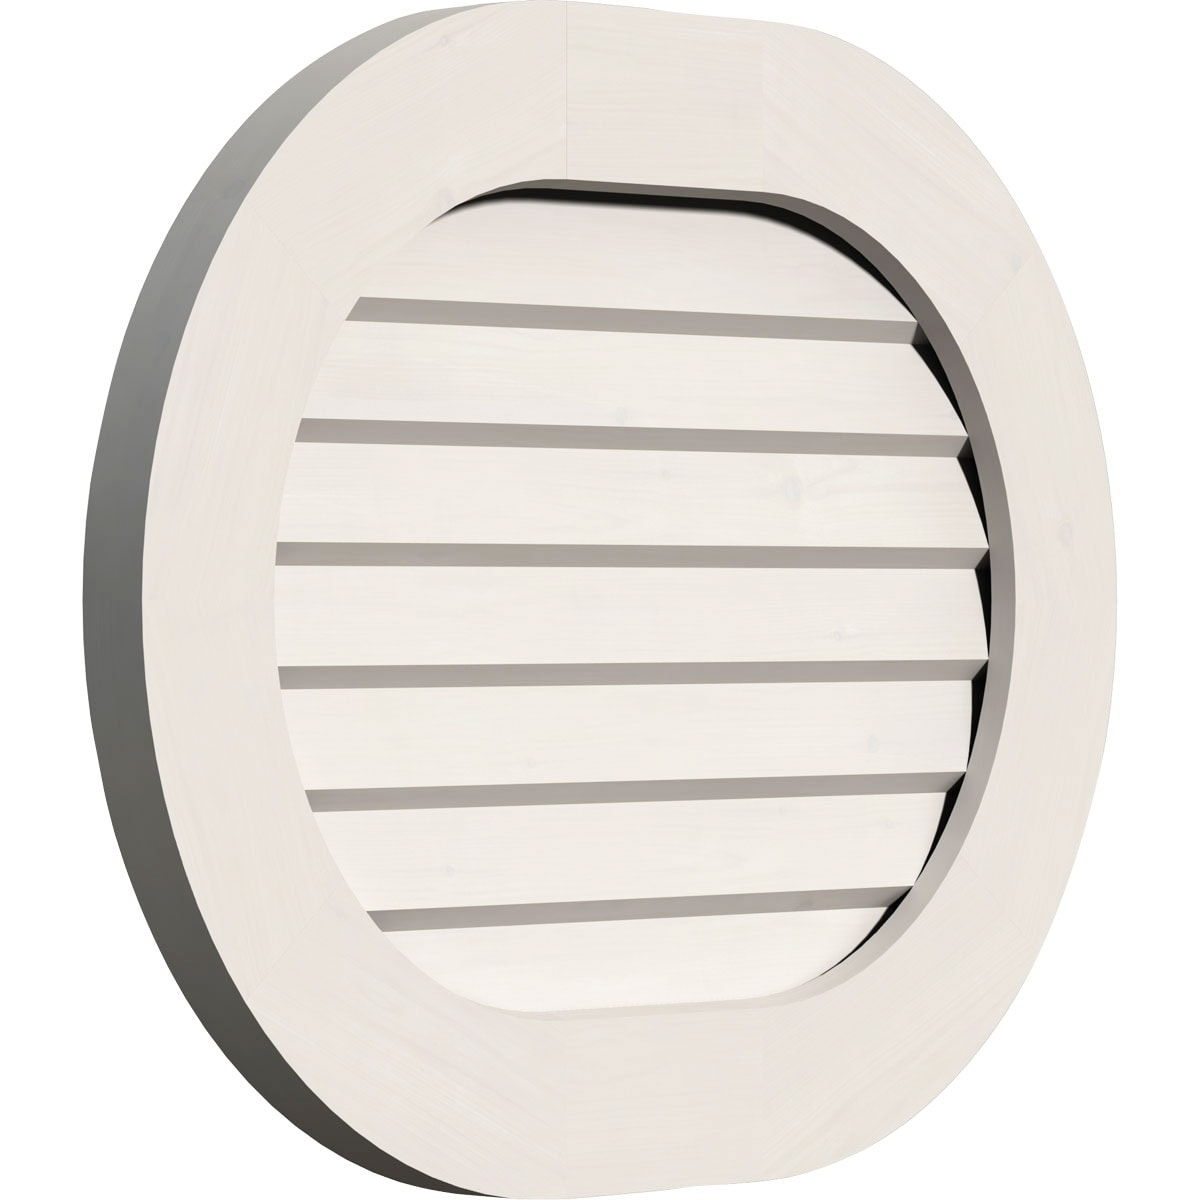 Horizontal Round Ended Gable Vent (Non-Functional / 24W x 12H)